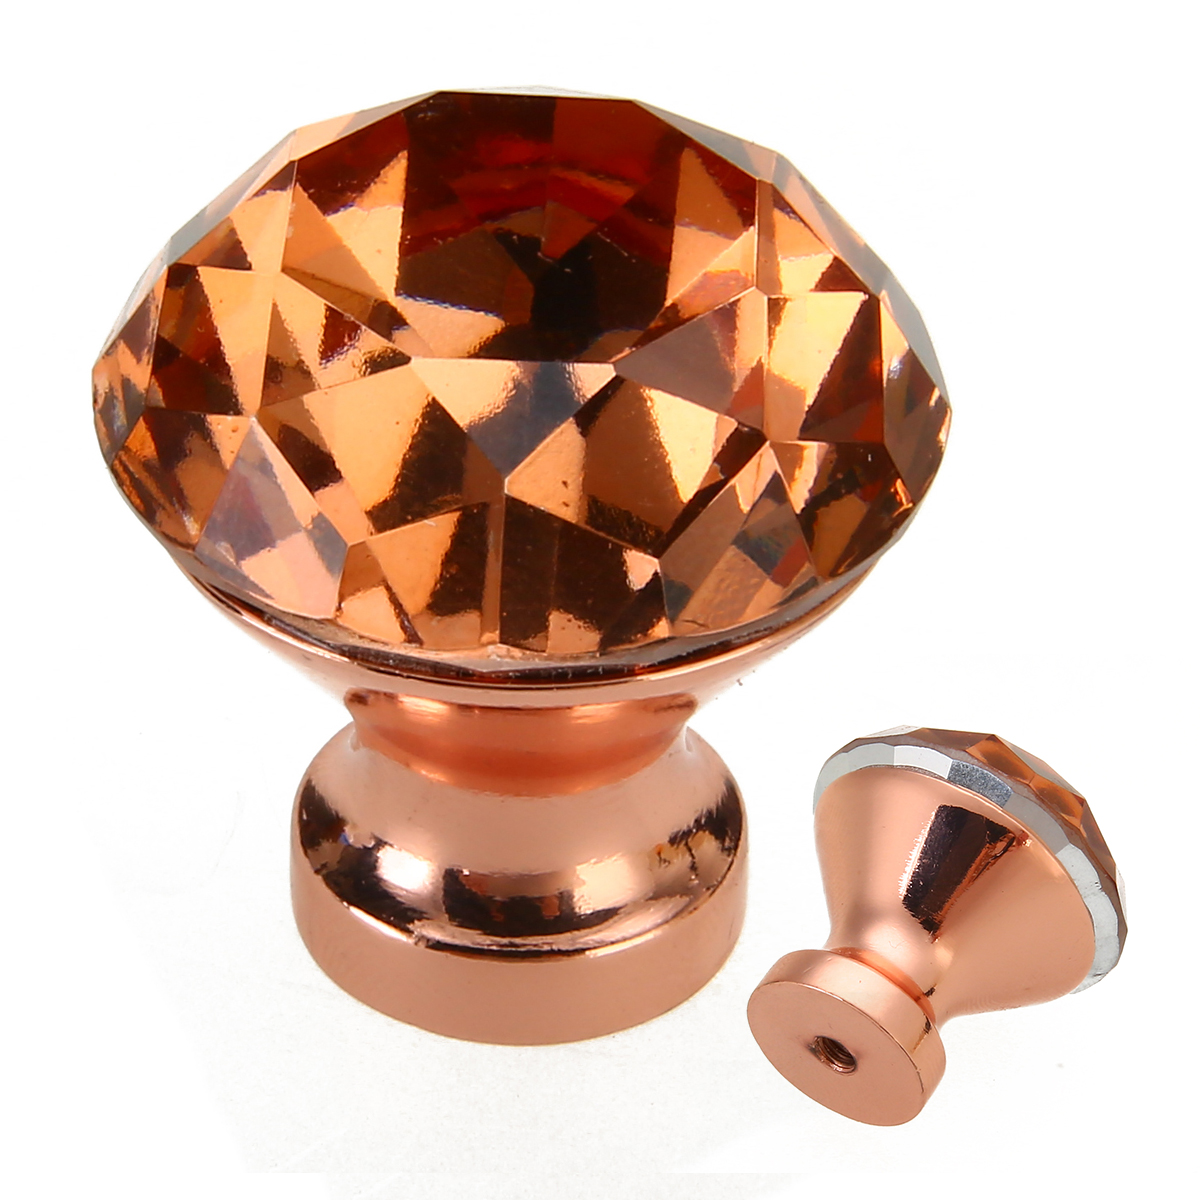 1PC 30mm Crystal Furniture Knobs Pull Handle Rose Gold